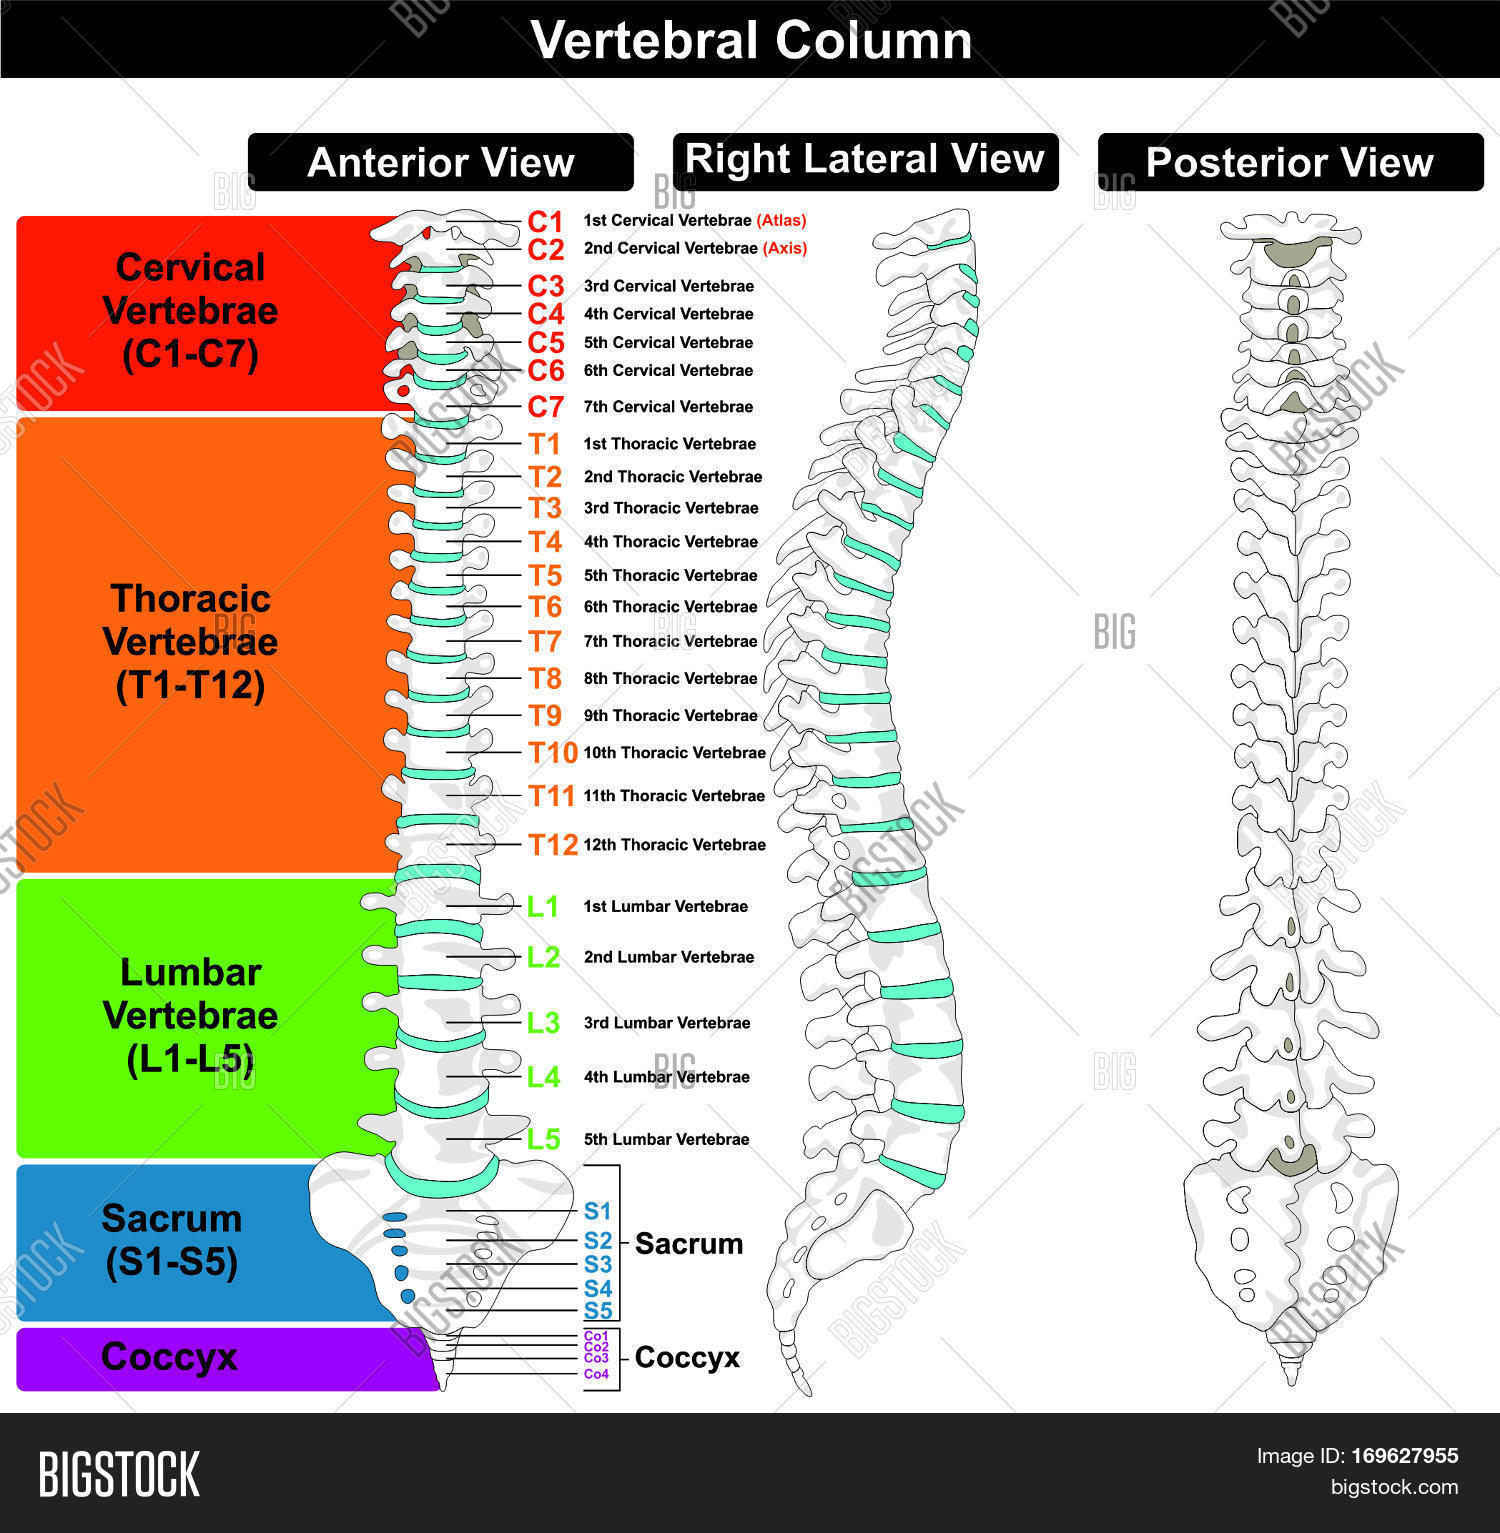 Vertebral Column Spine Image Photo Free Trial Bigstock